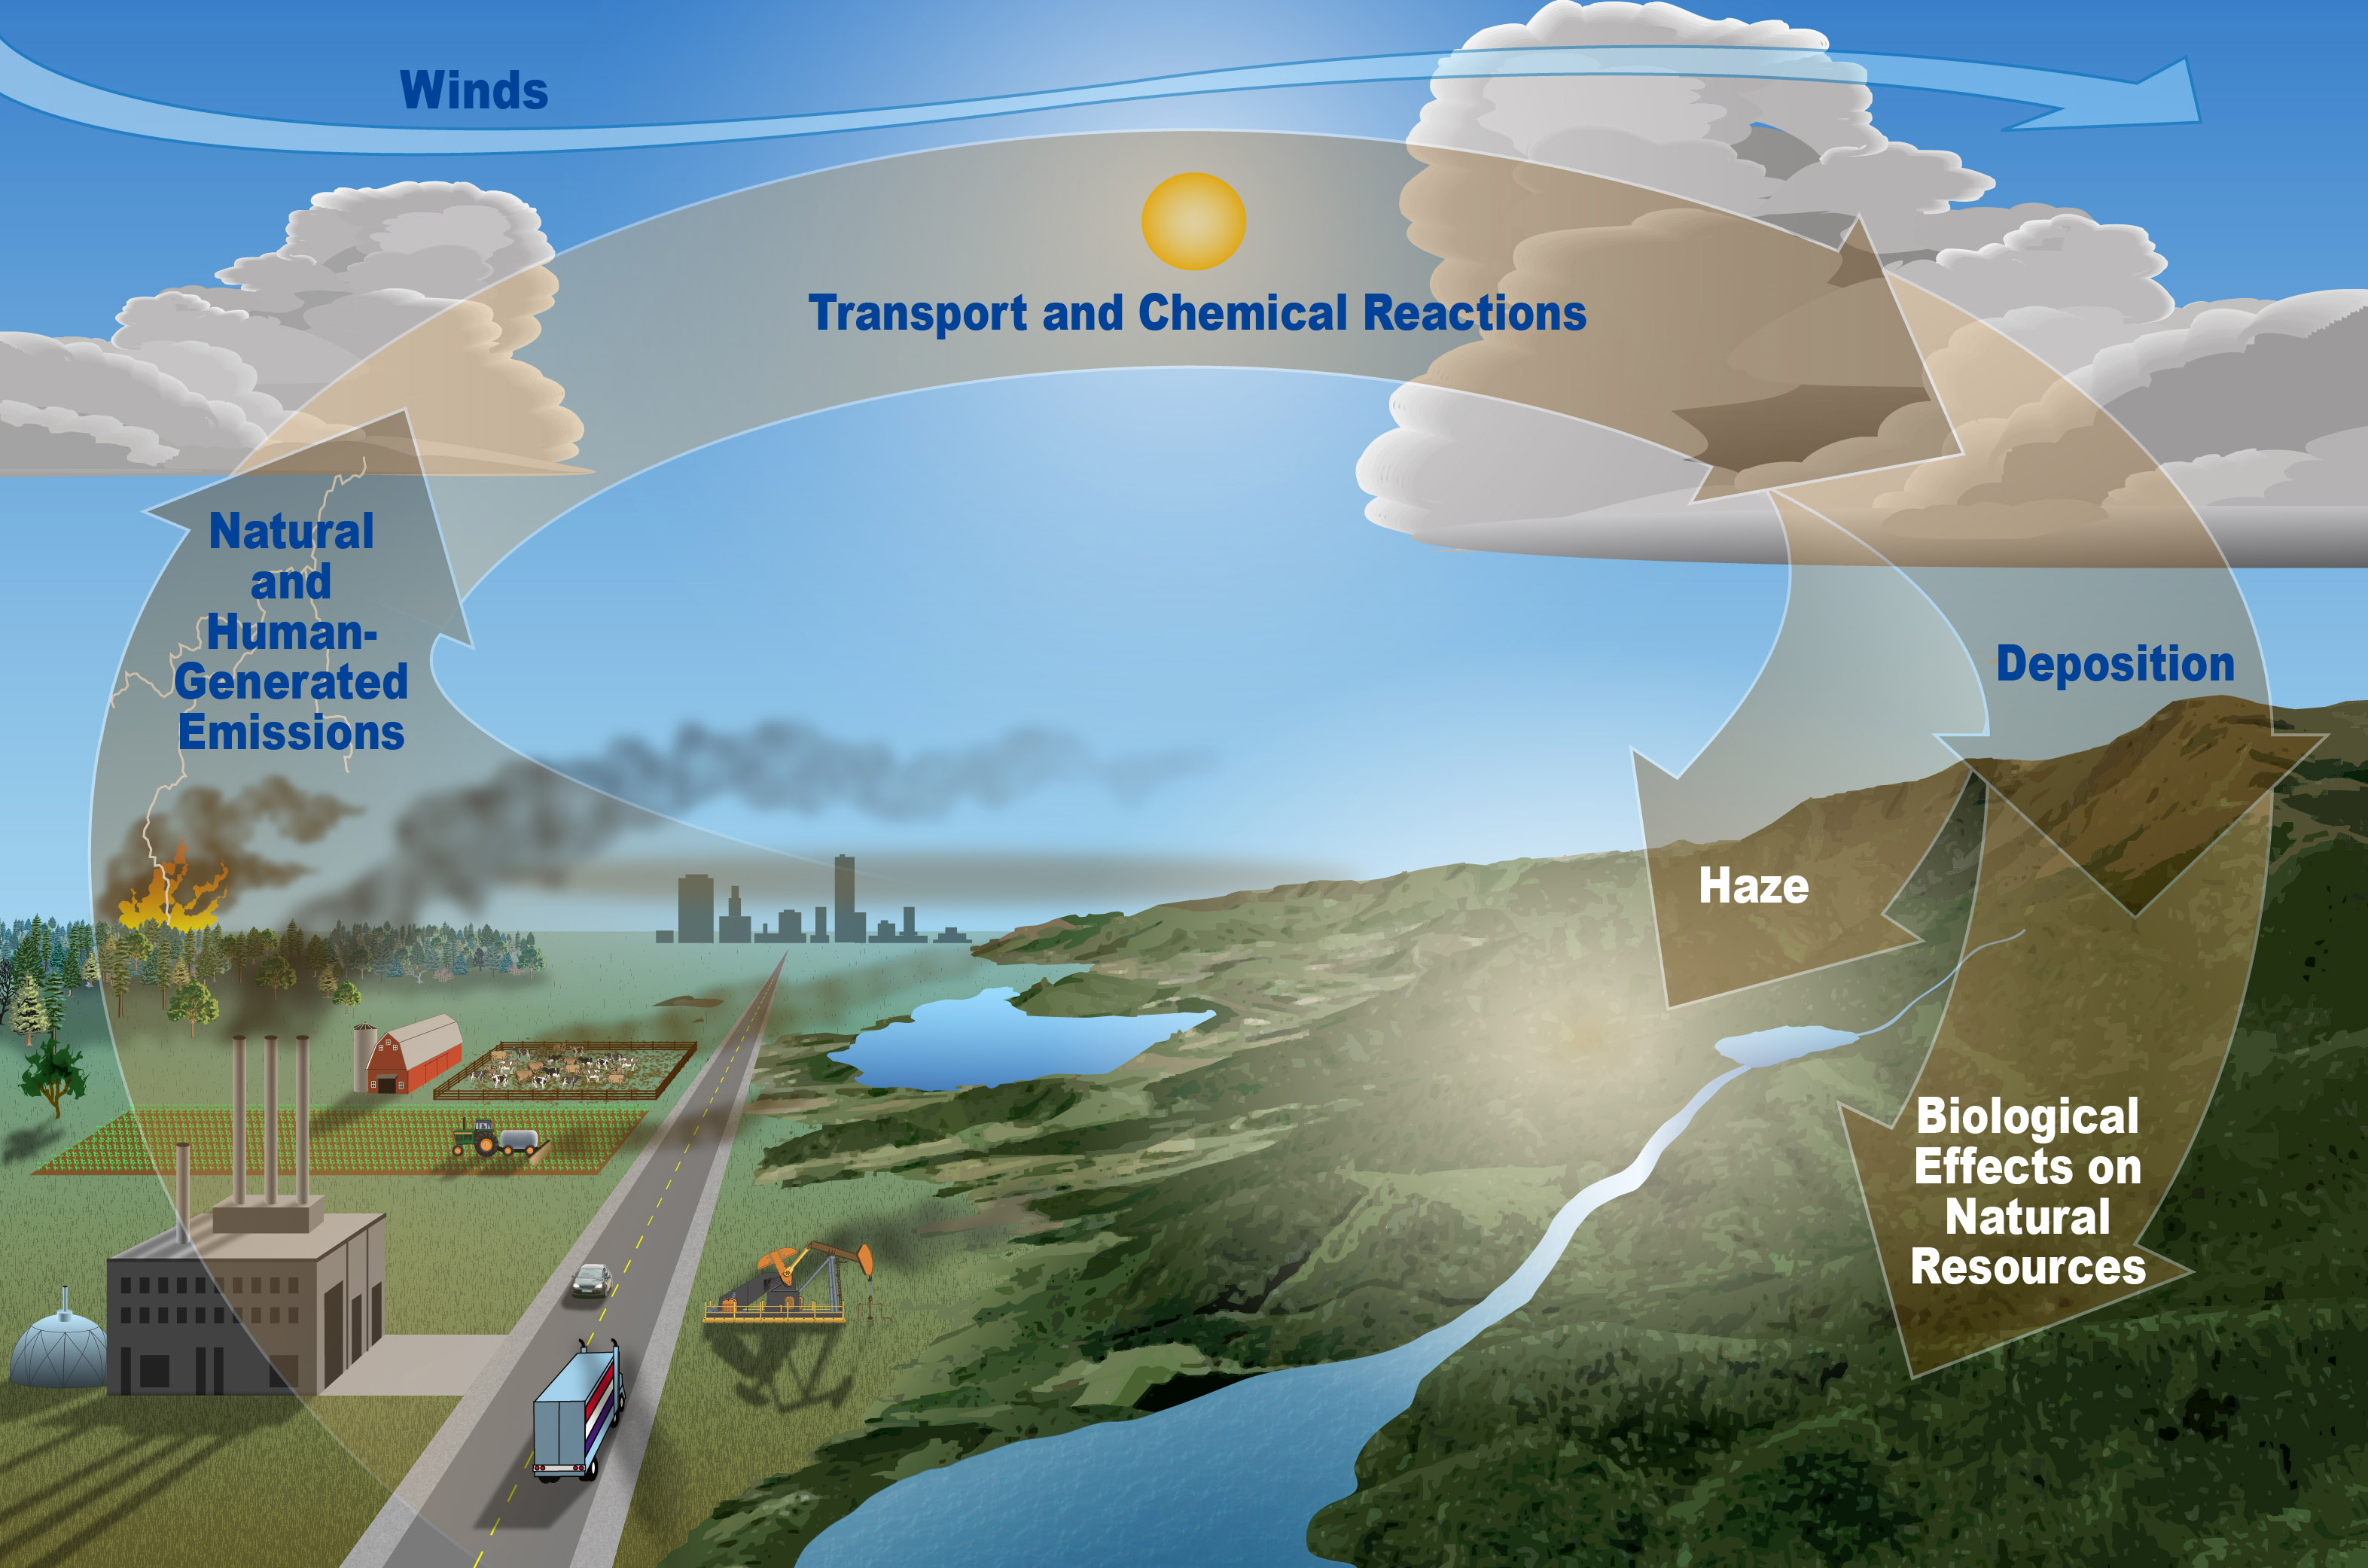 Where Does Air Pollution Come From